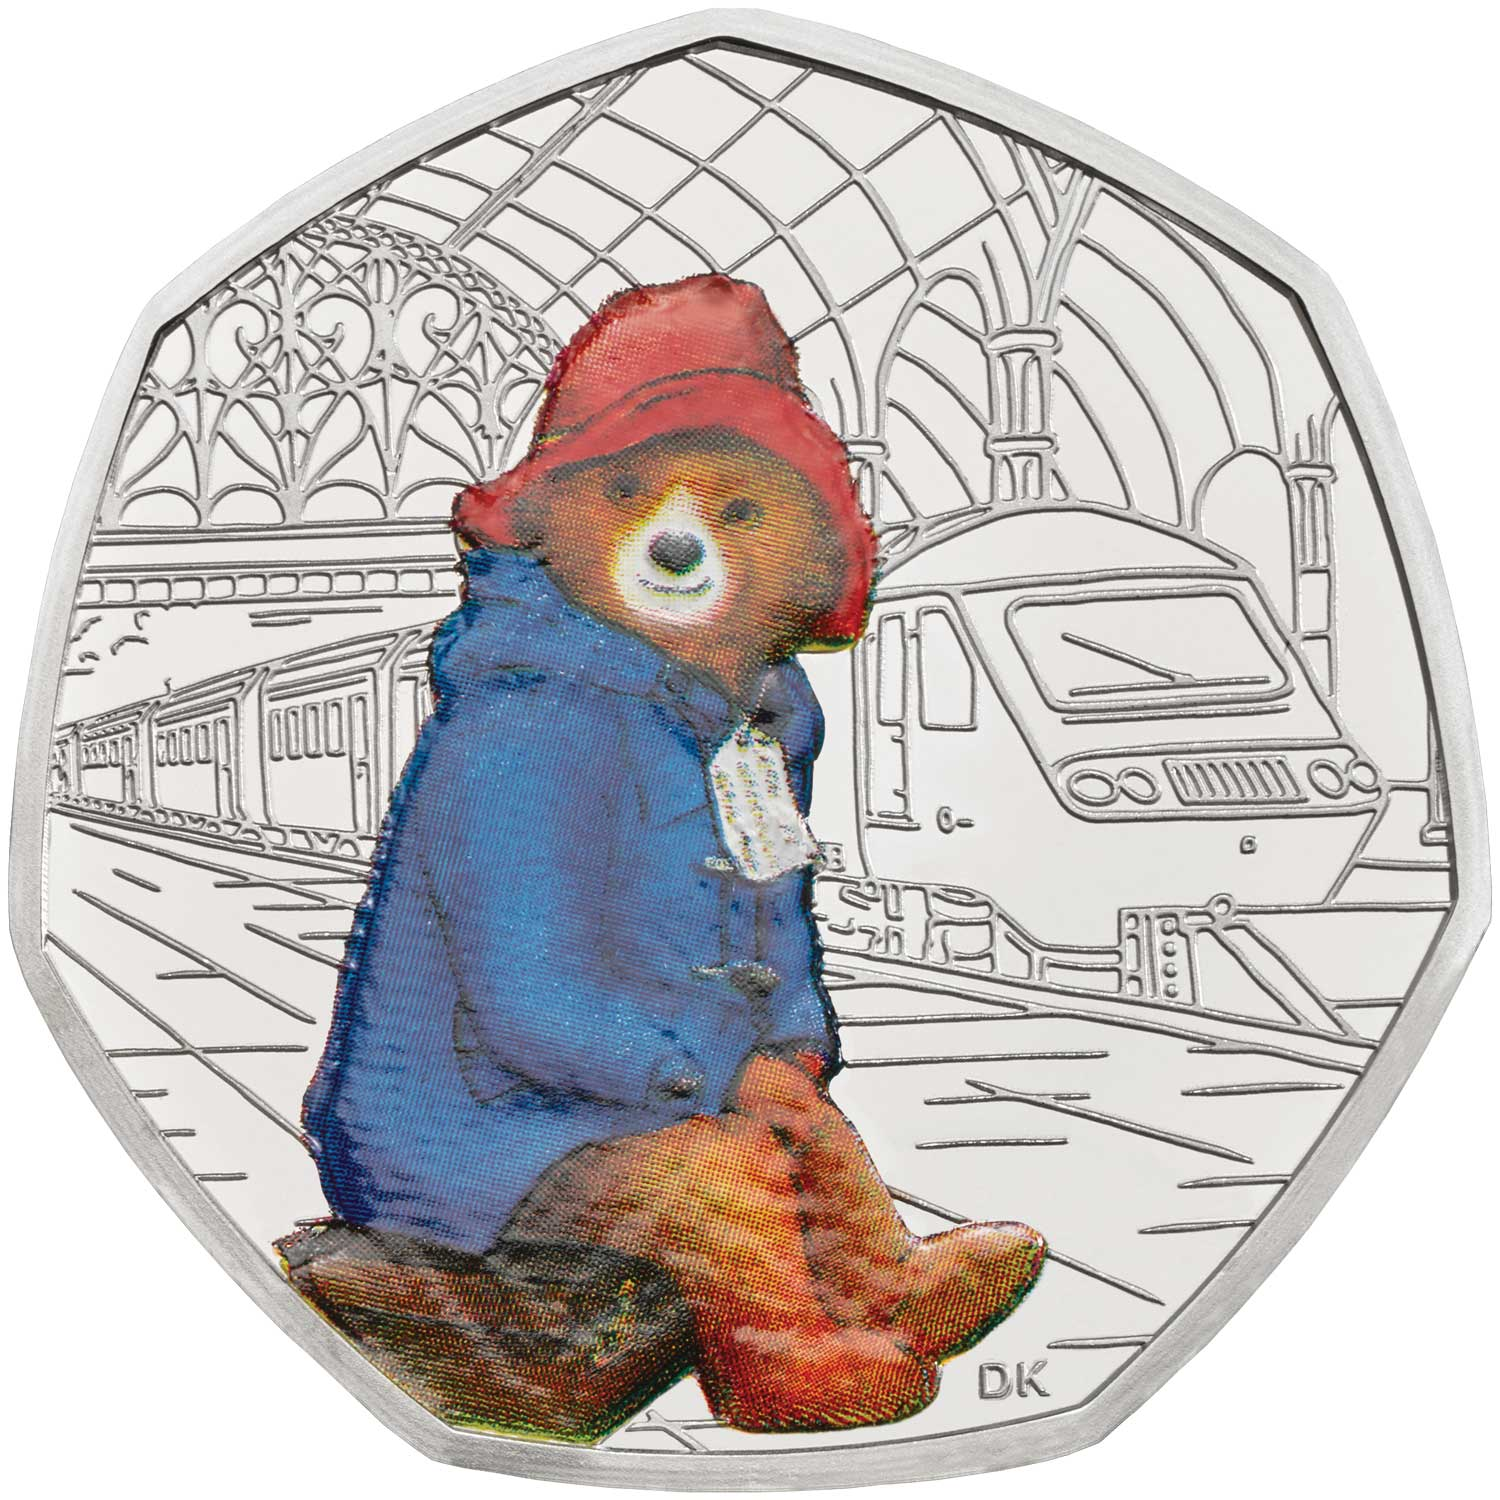 Fifty Pence 2018 Paddington Bear at the Station: Photo Paddington at the Station 2018 UK 50p Silver Proof Coin